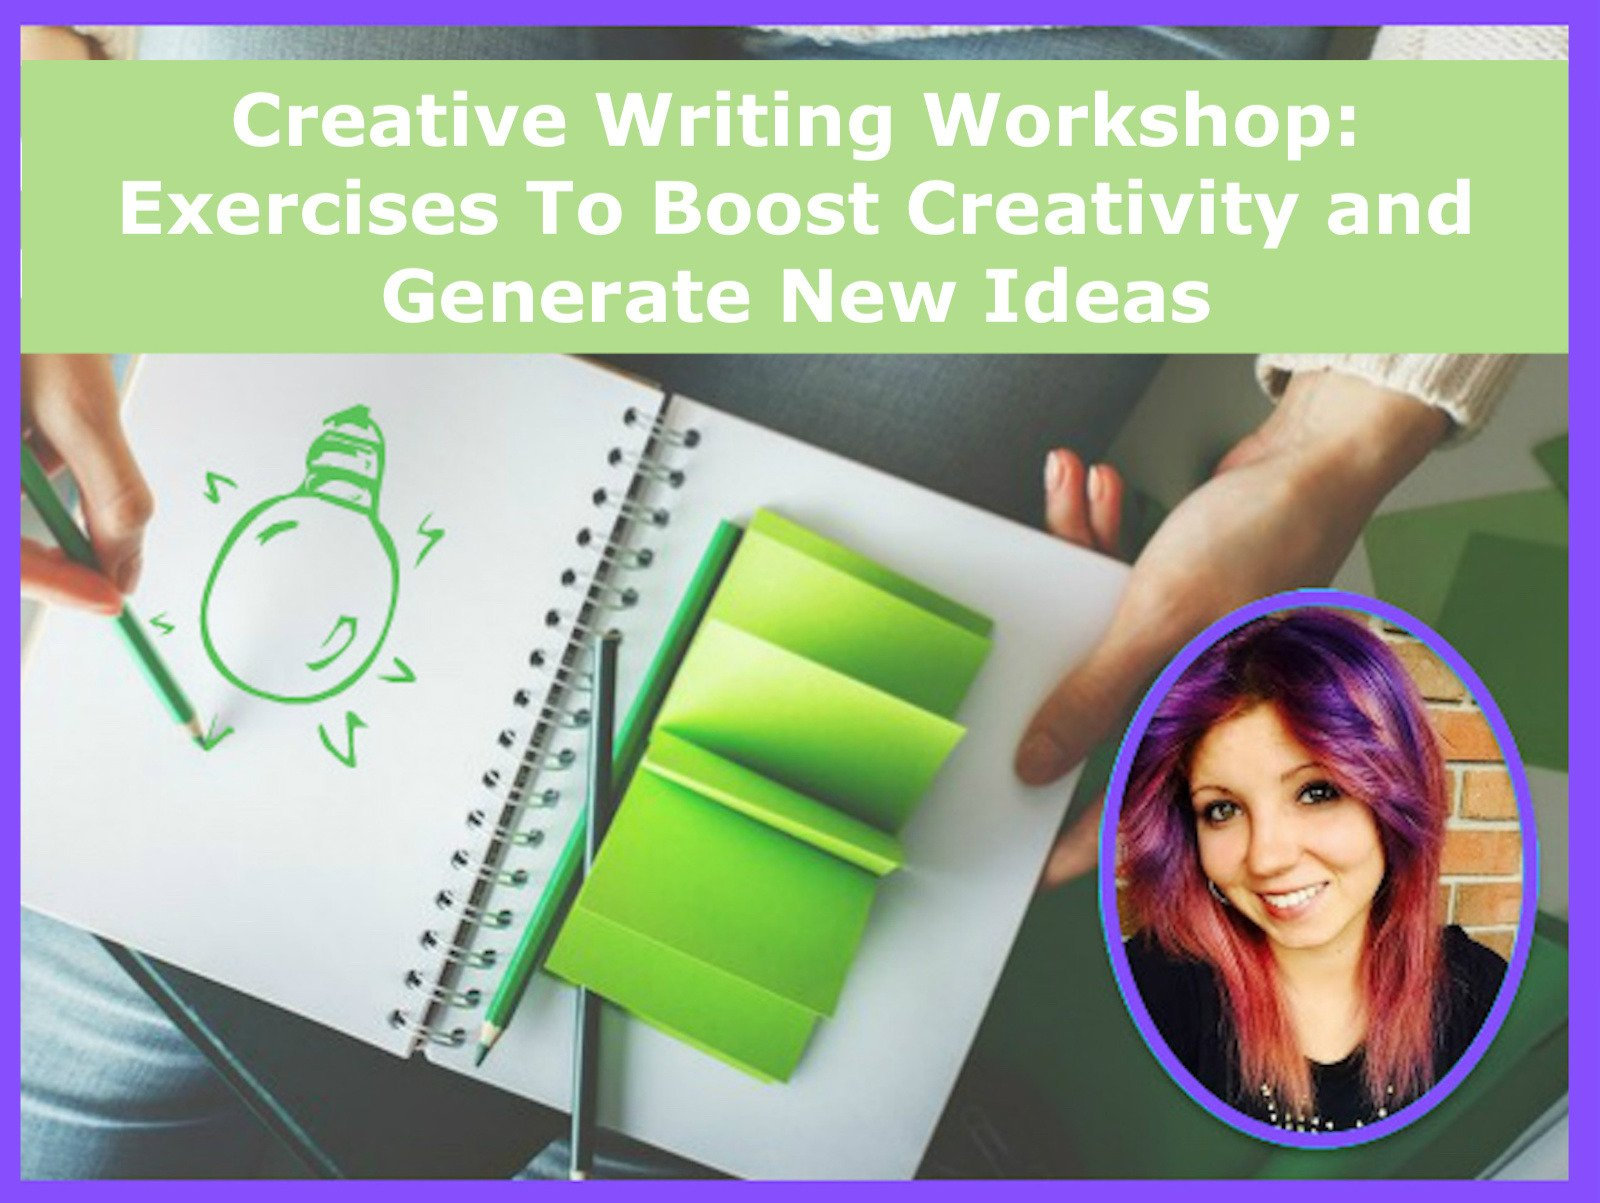 Creative Writing Workshop: Exercises To Boost Creativity and Generate New Ideas - Season 1